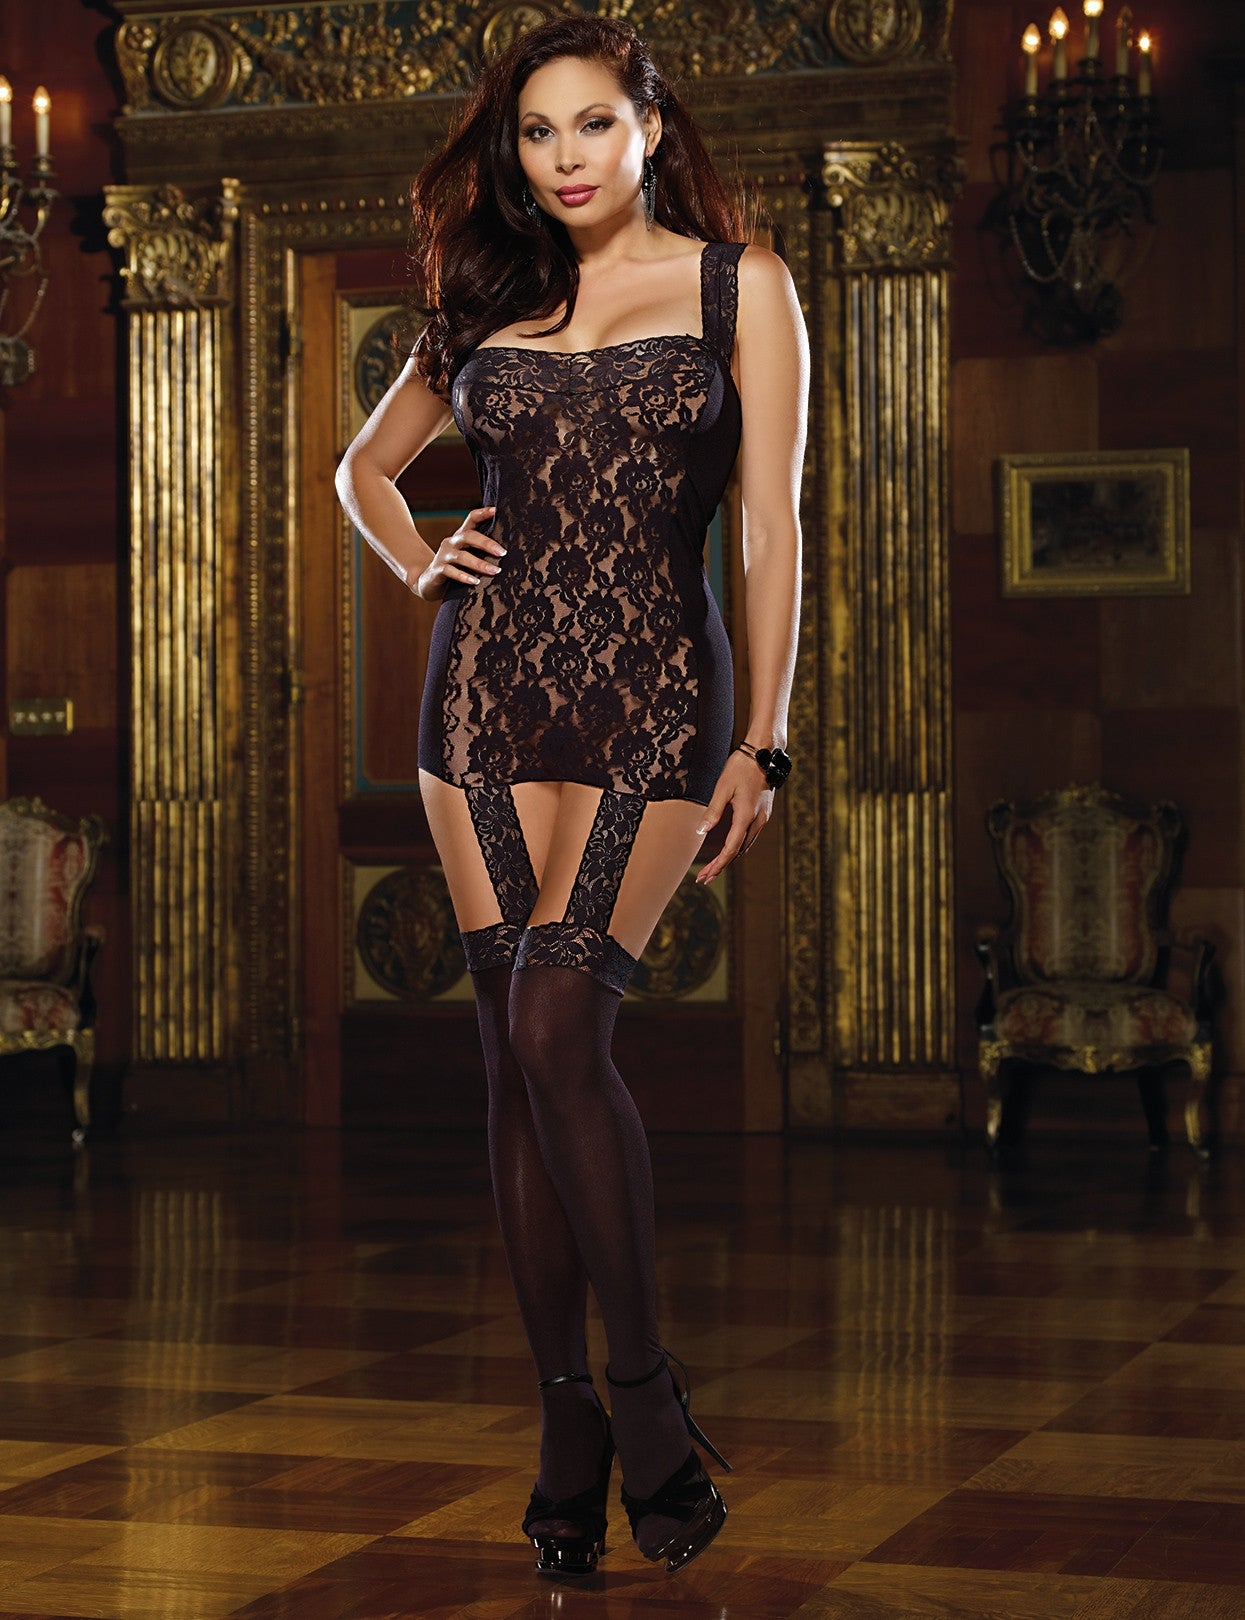 Plus Size Tahiti Hosiery Garter Dress - just damn sexy  - 1